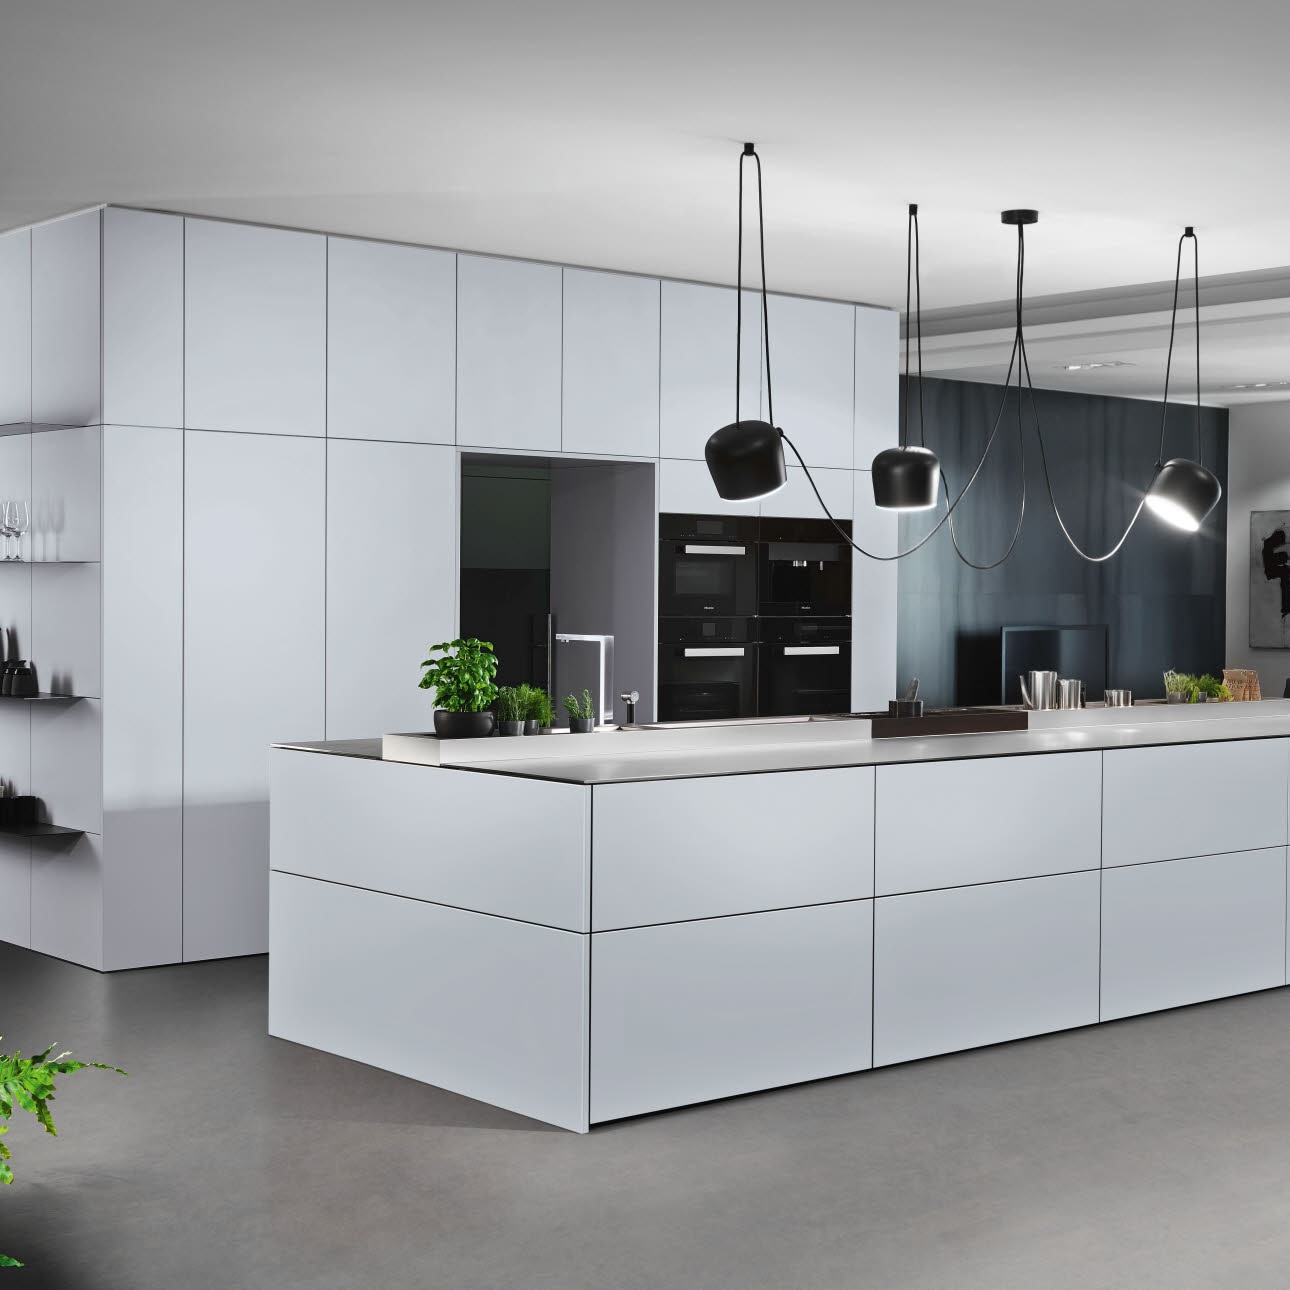 Puristic white design kitchen